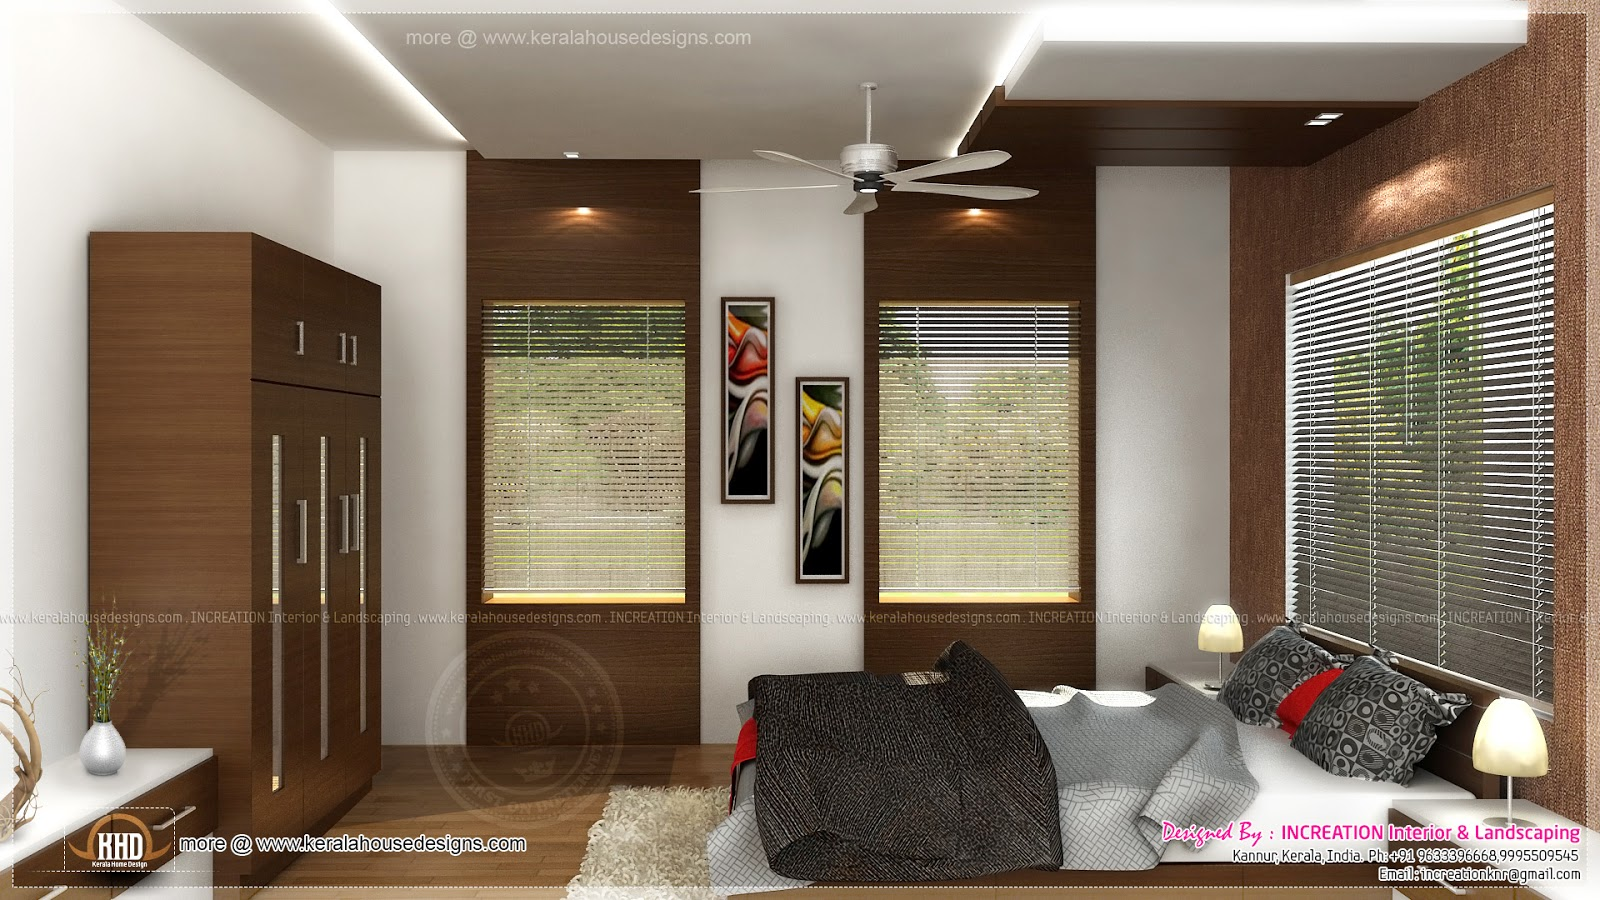 Interior designs from kannur kerala home kerala plans Low cost interior design for homes in kerala